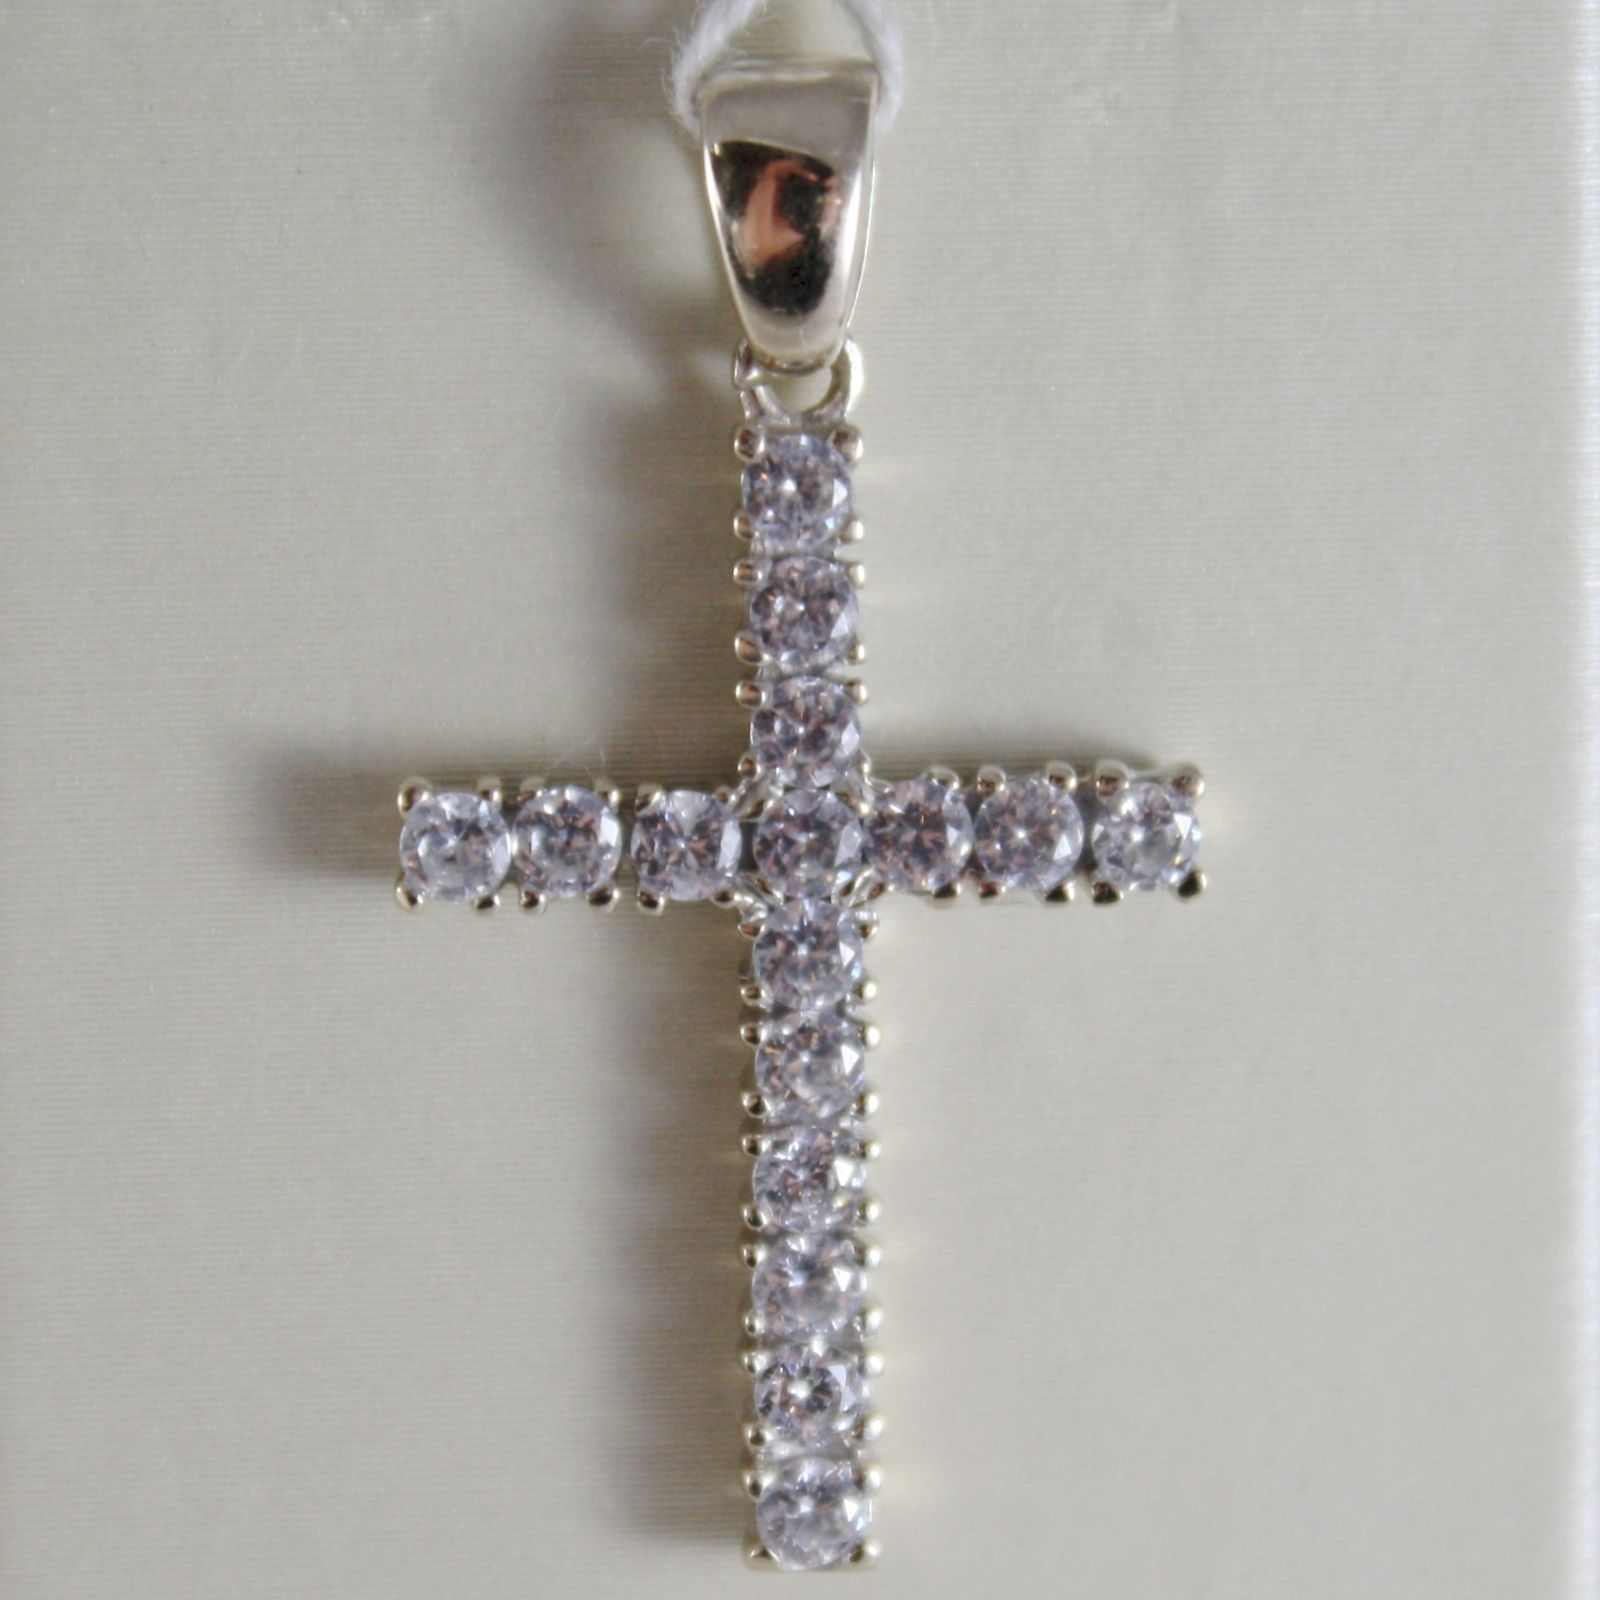 18K WHITE GOLD CROSS WITH ZIRCONIA 0.80 CARATS, 1.18 INCHES, MADE IN ITALY